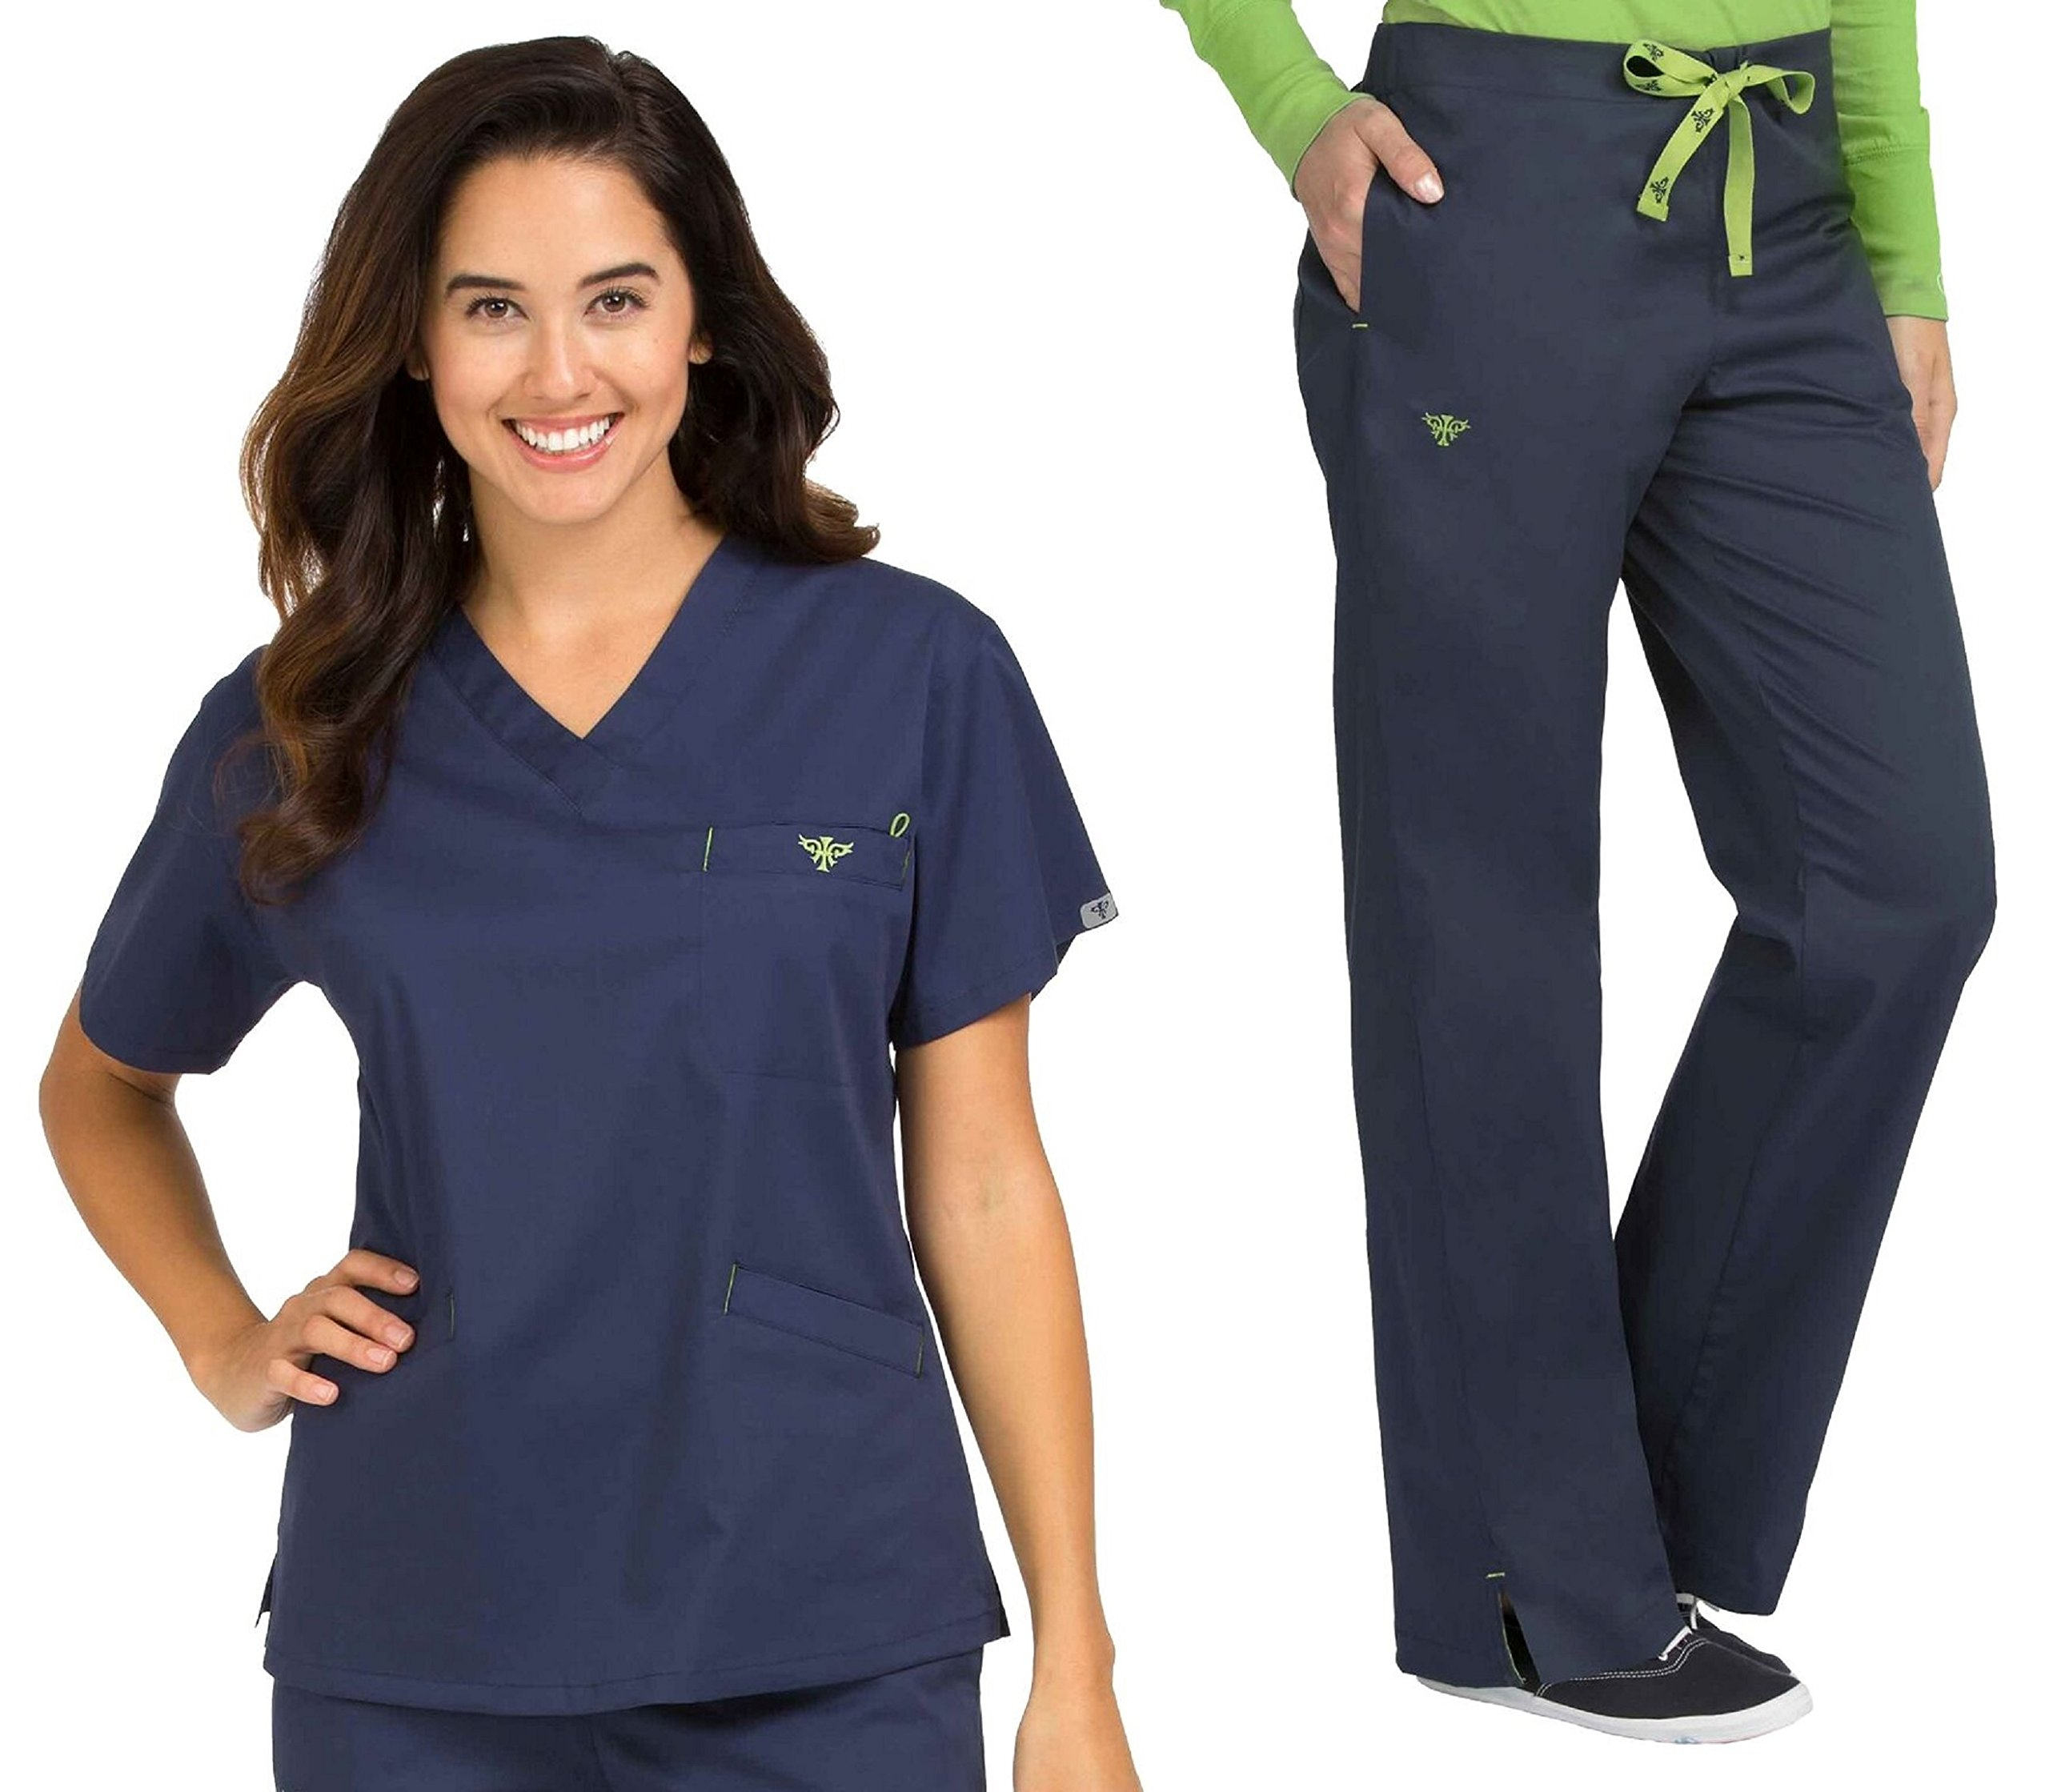 Med Couture Signature V-Neck Top & Signature Straight Leg Pant Scrub Set[XS - 3XL] + Free Gift